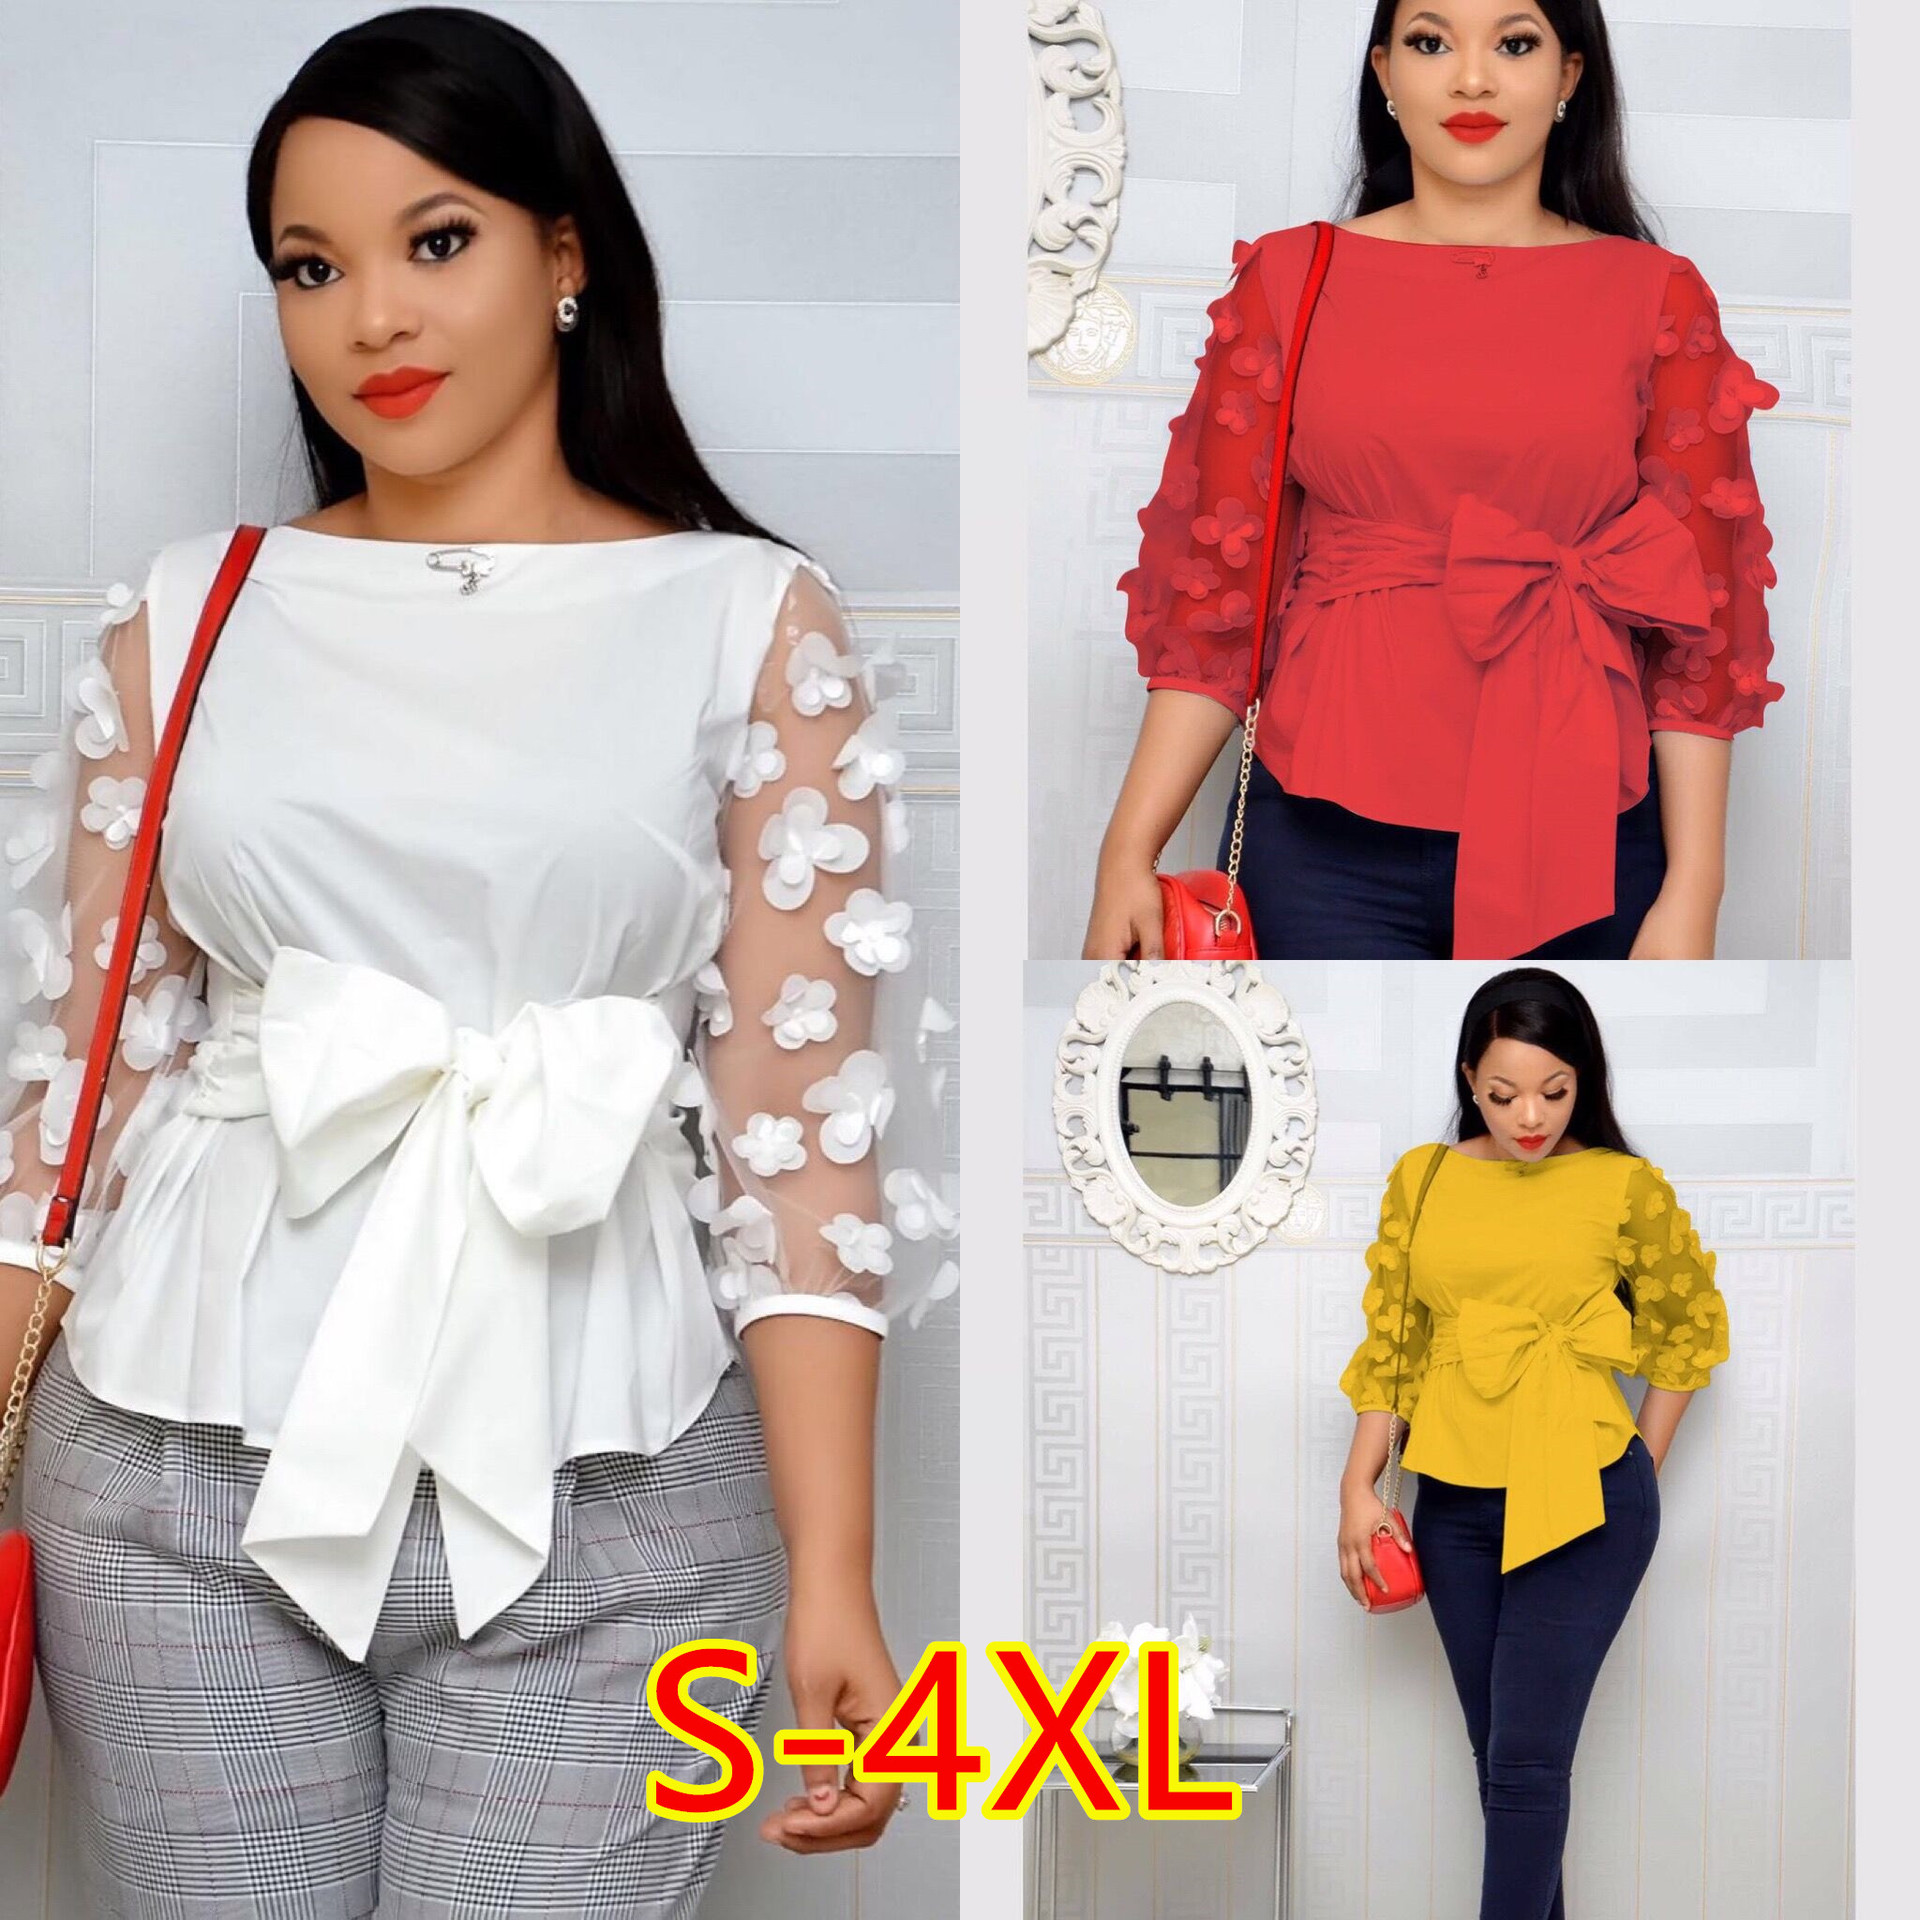 2019 S-4XL Women Fashion Polka Dot Blouses Sexy Mesh Sheer See-through Shirts Gauze Tull Tops Blusas Femininas